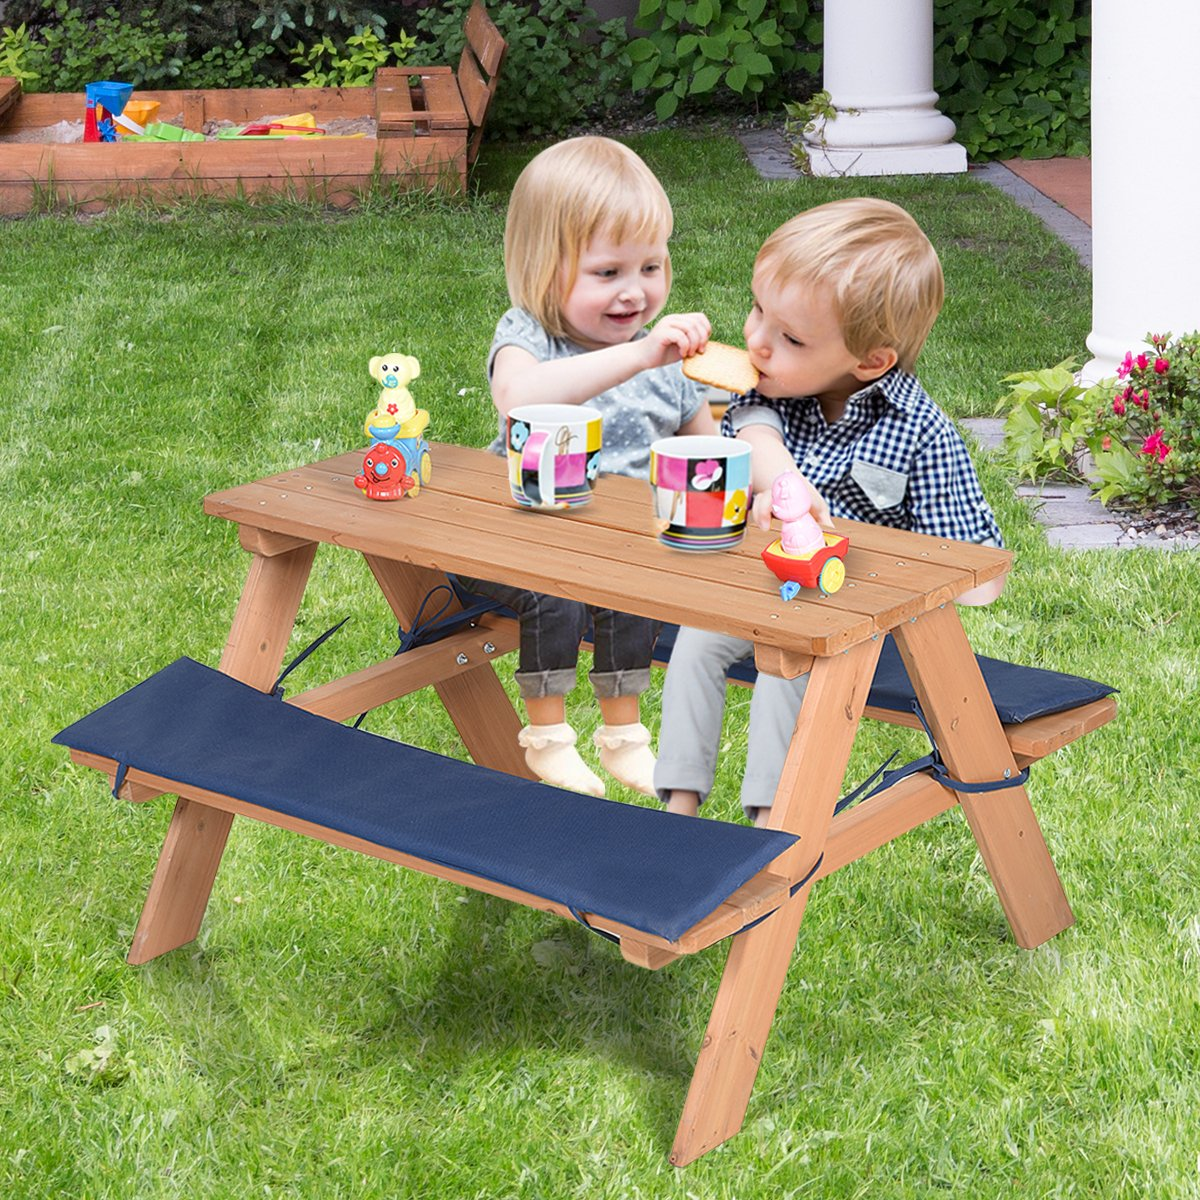 Super Costzon Kids Picnic Table Solid Wood Bench Set Up To 4 Seat Unfinished Choose Your Favorite Finish Color Children Play Table Outdoor Garden Yard Gamerscity Chair Design For Home Gamerscityorg